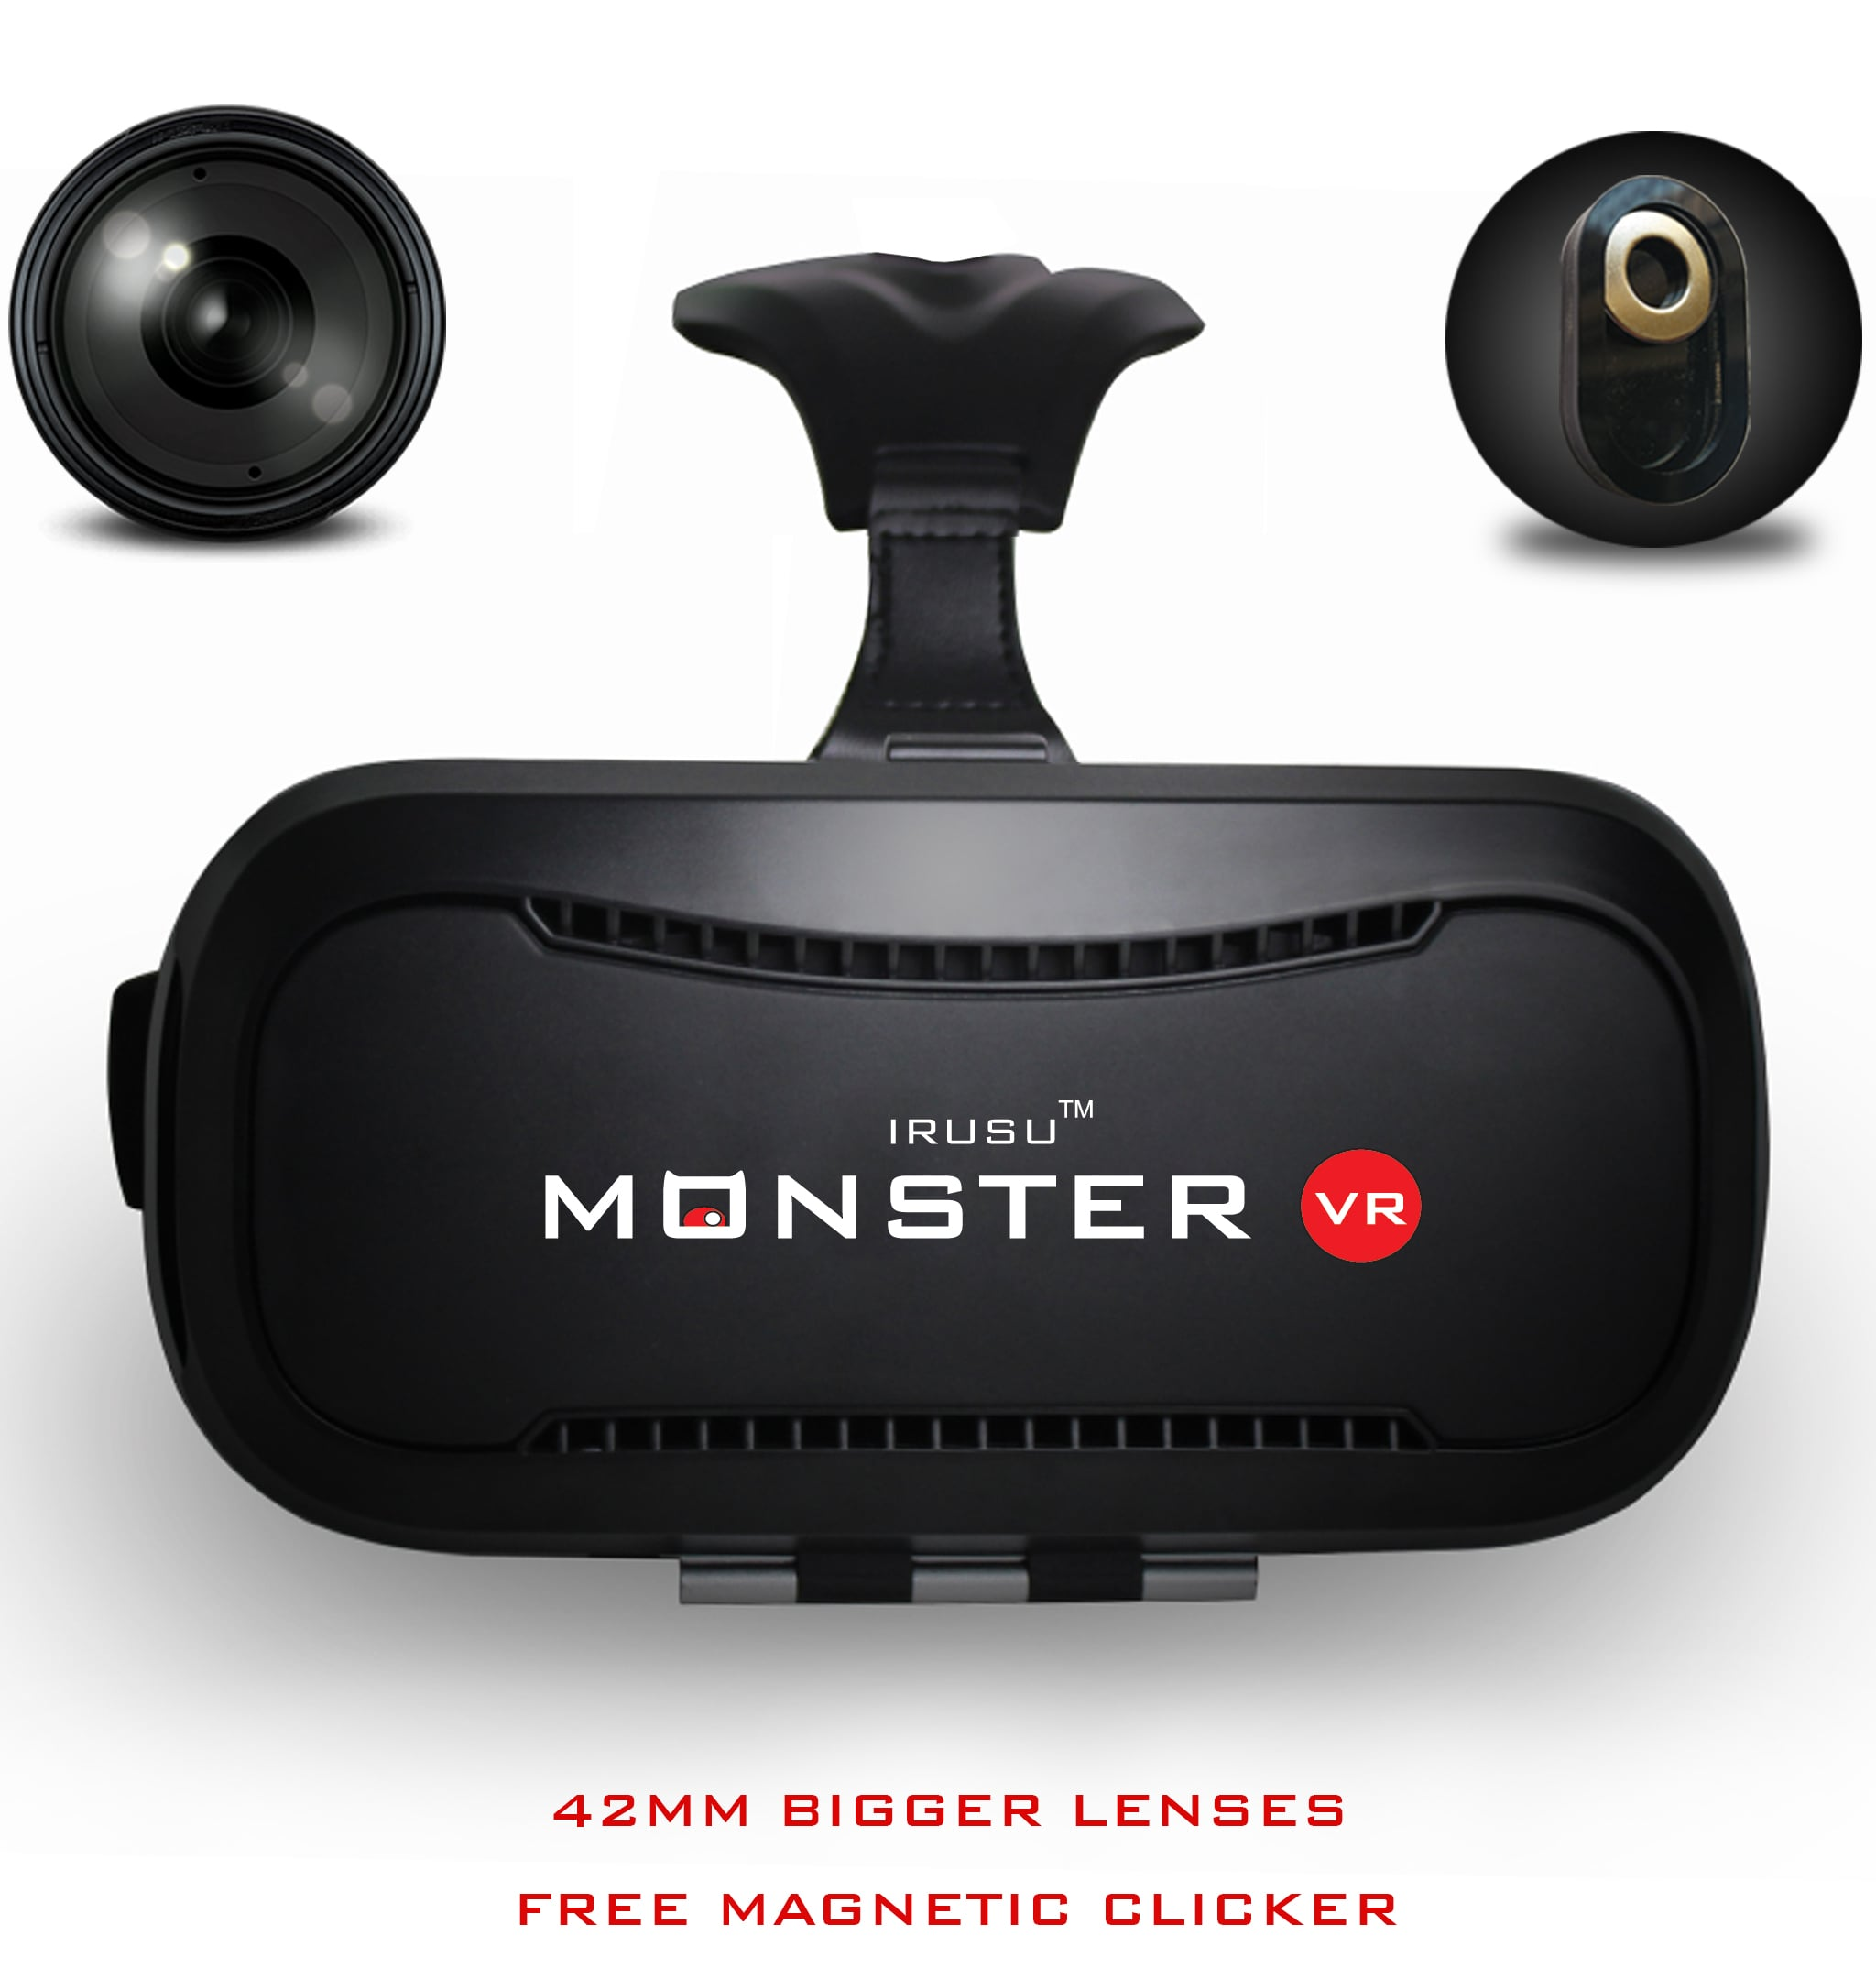 Irusu Monster vr headset without remote